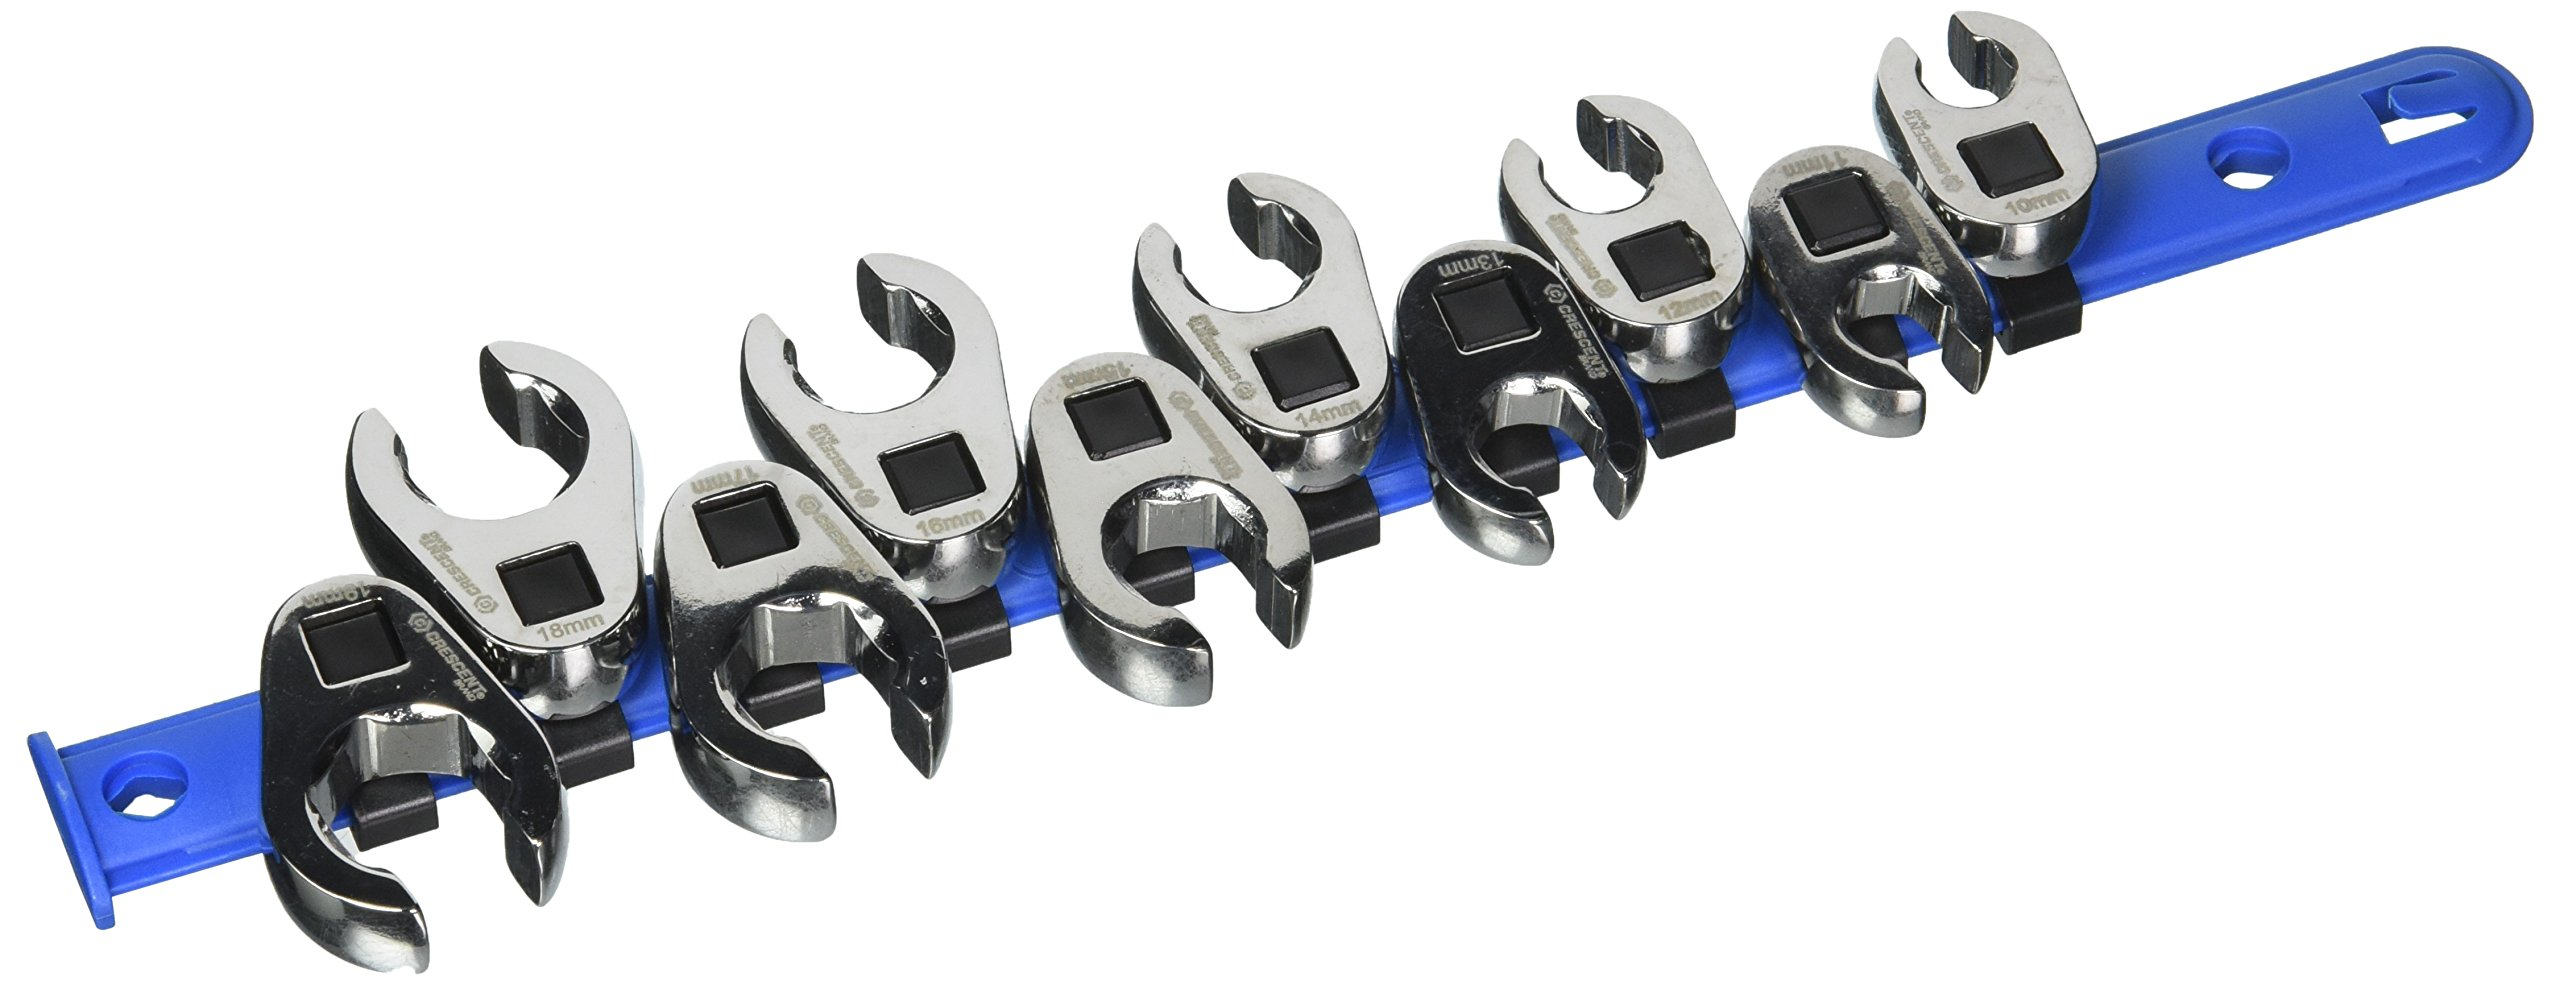 Crescent 10 Pc. 3/8'' Drive Flare Nut Metric Wrench Set - CCFWS1N by Crescent